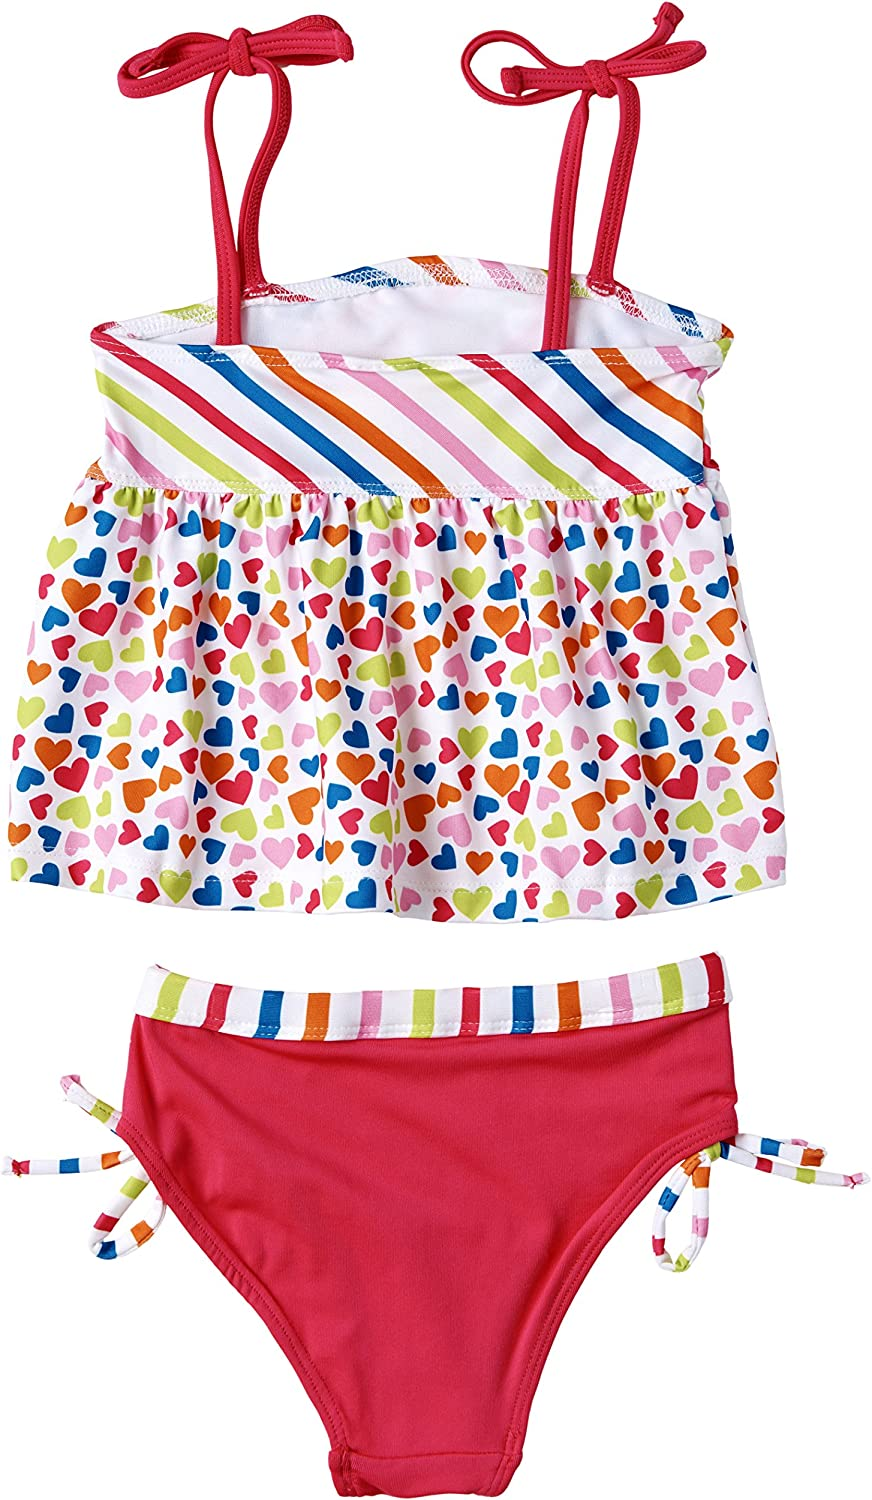 24 Months Pink Platinum Baby Girls UV Protection Sunblock Two Piece Tankini Swimsuit Set White